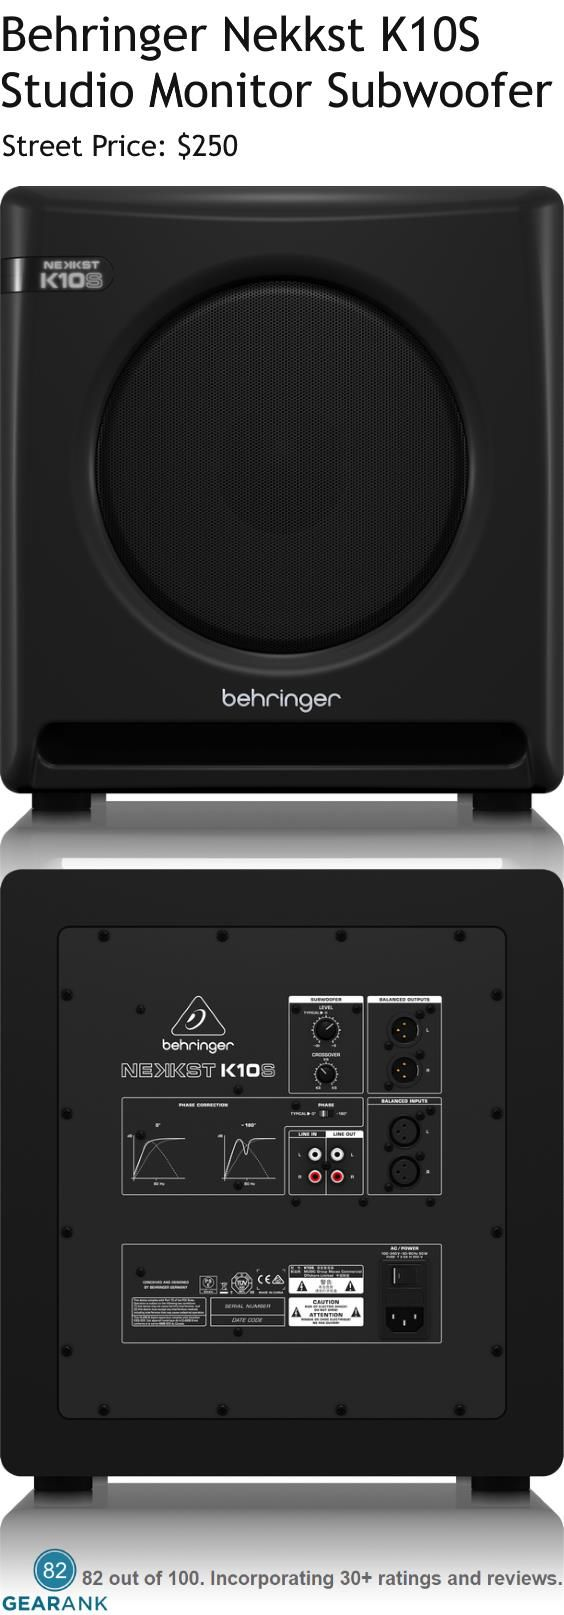 "Behringer Nekkst K10S Studio Monitor Subwoofer. Features: Frequency Response: 40 Hz to 150 Hz - Crossover: 40-150 Hz variable - Max SPL: 117 dB - Power Rating: 180 Watts - Driver: 10"" Glass Fiber Cone - Input Connectors: 2 x XLR, 2 x RCA - Output Connectors: 2 x XLR, 2 x RCA.  For a detailed guide to the Best Studio Monitor Subwoofers see https://www.gearank.com/guides/studio-subwoofers"